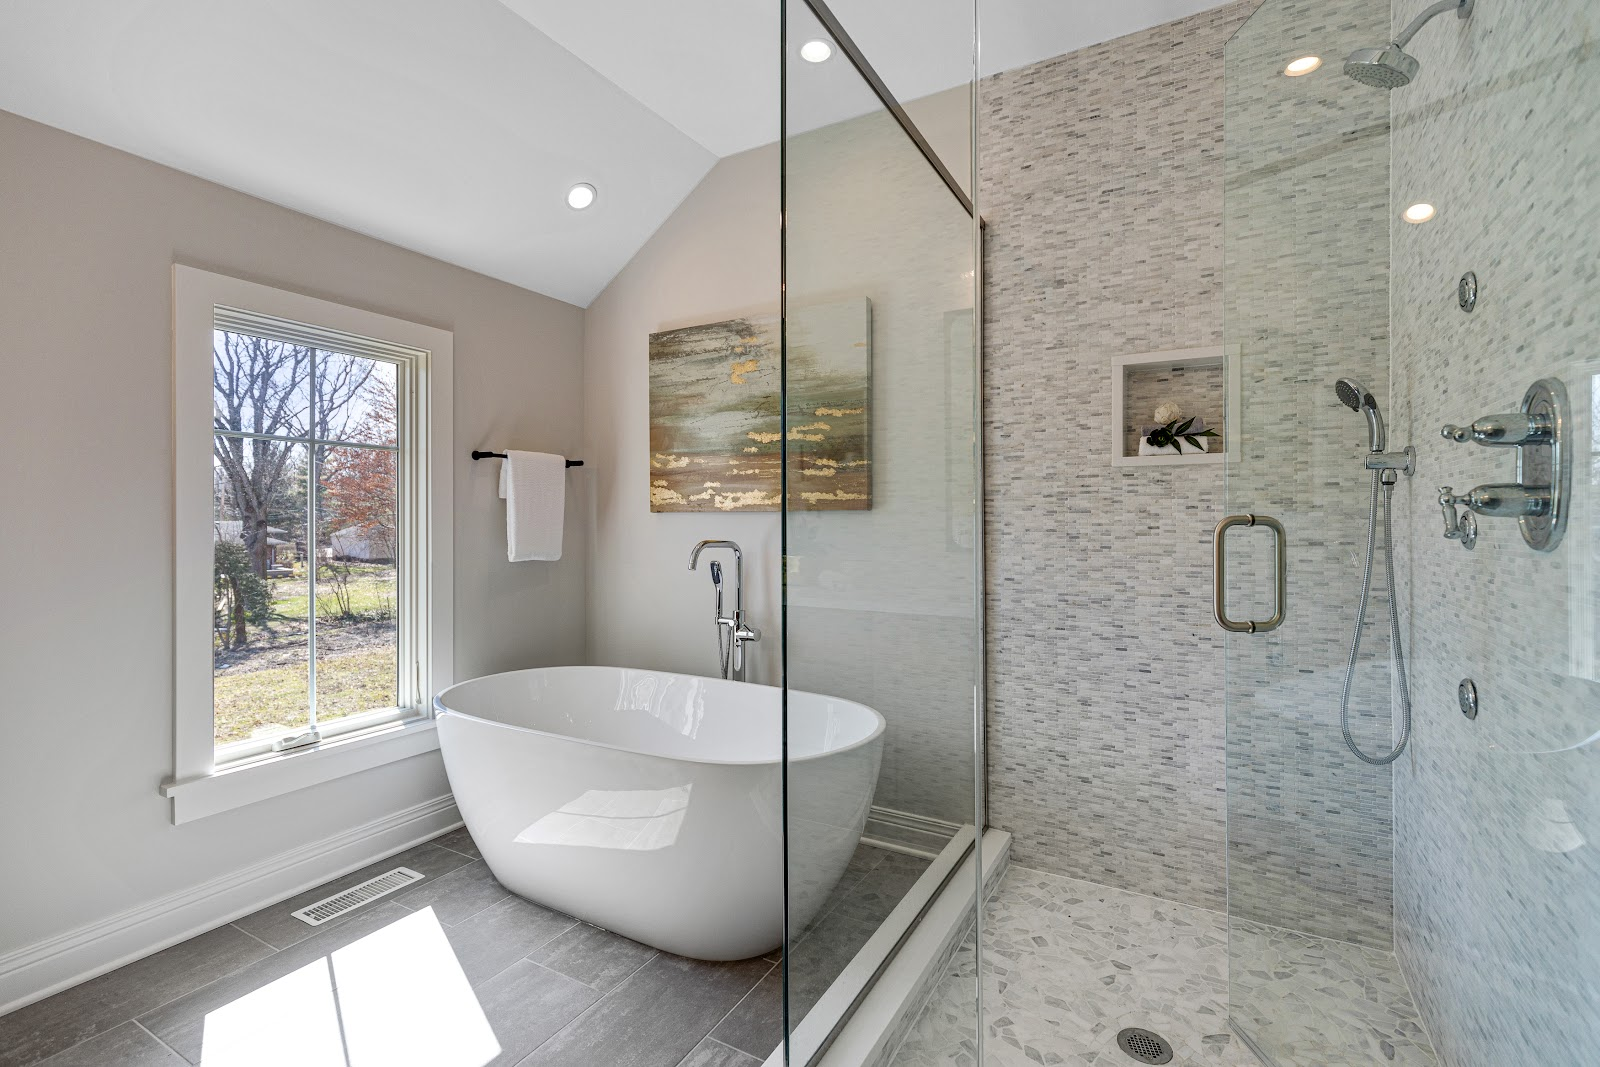 HDC bathroom with glass shower and ceramic tub